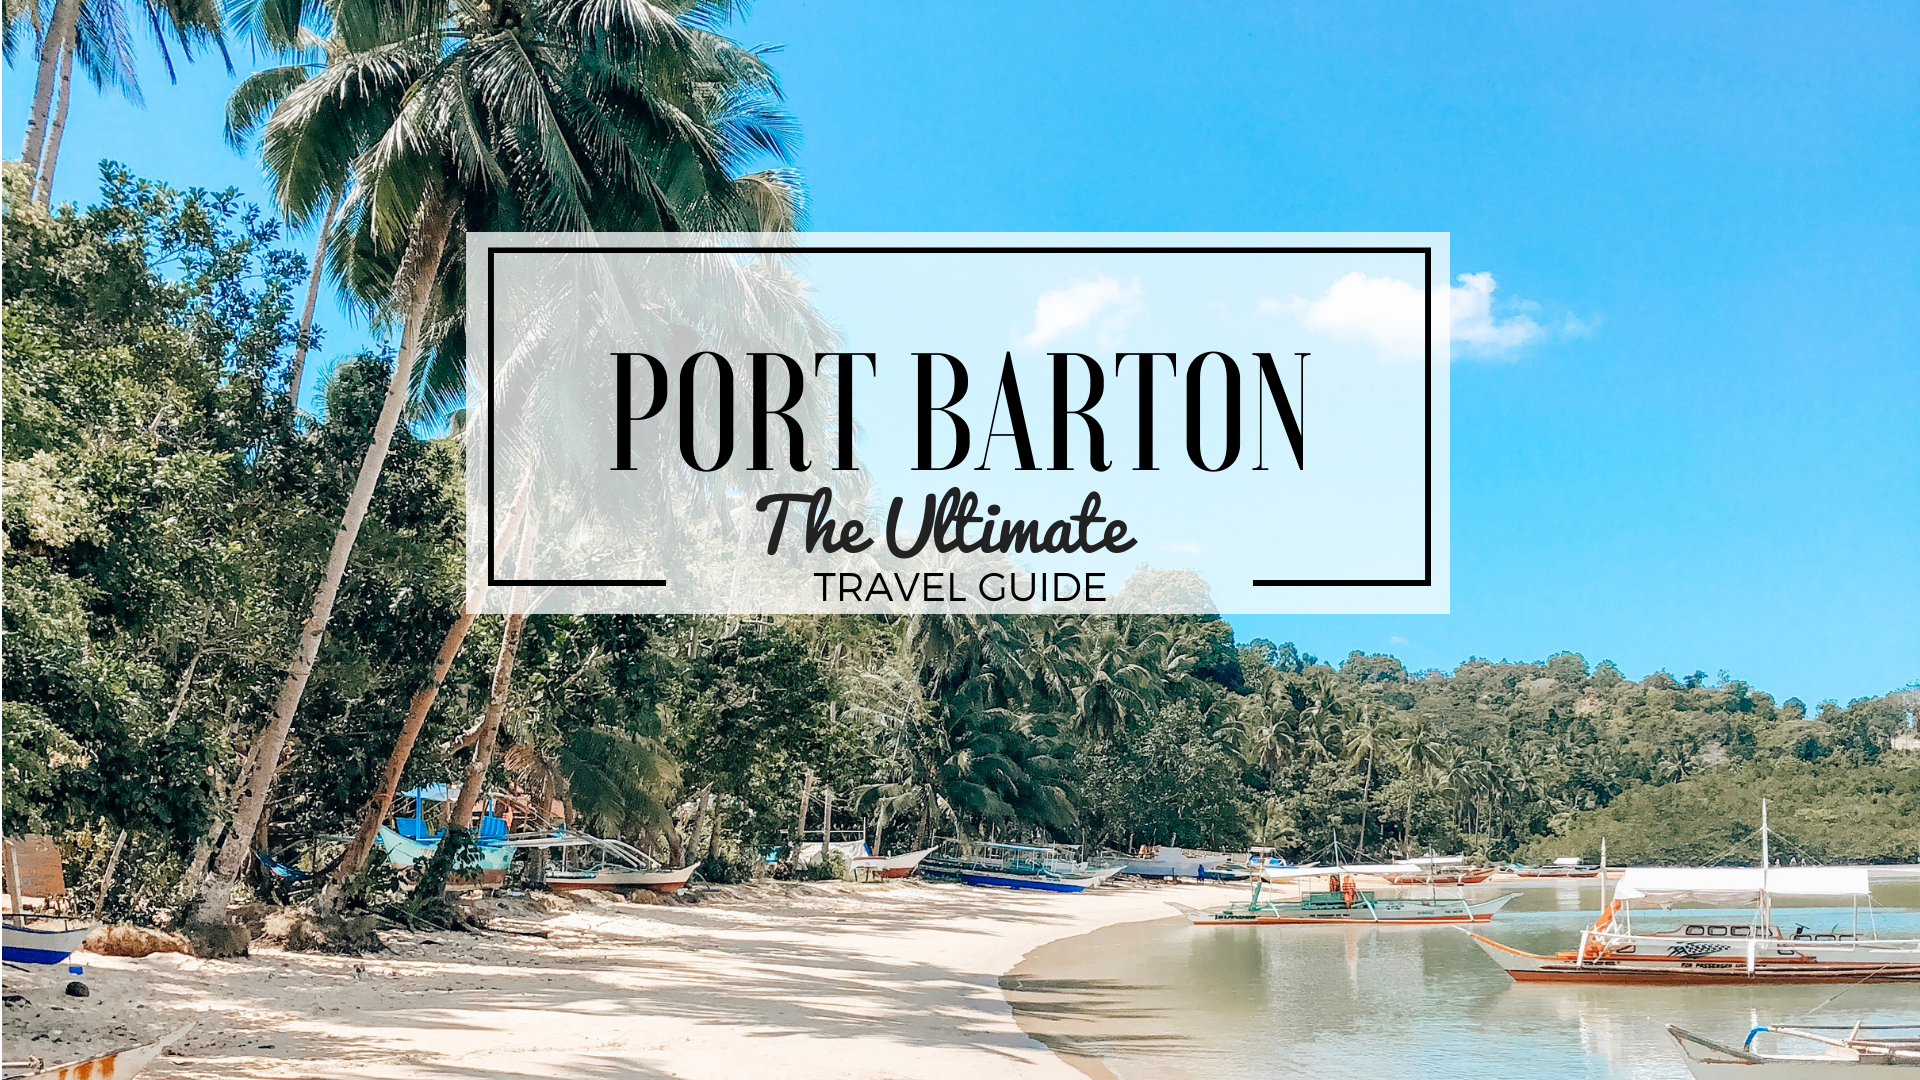 Port Barton The Ultimate Travel Guide